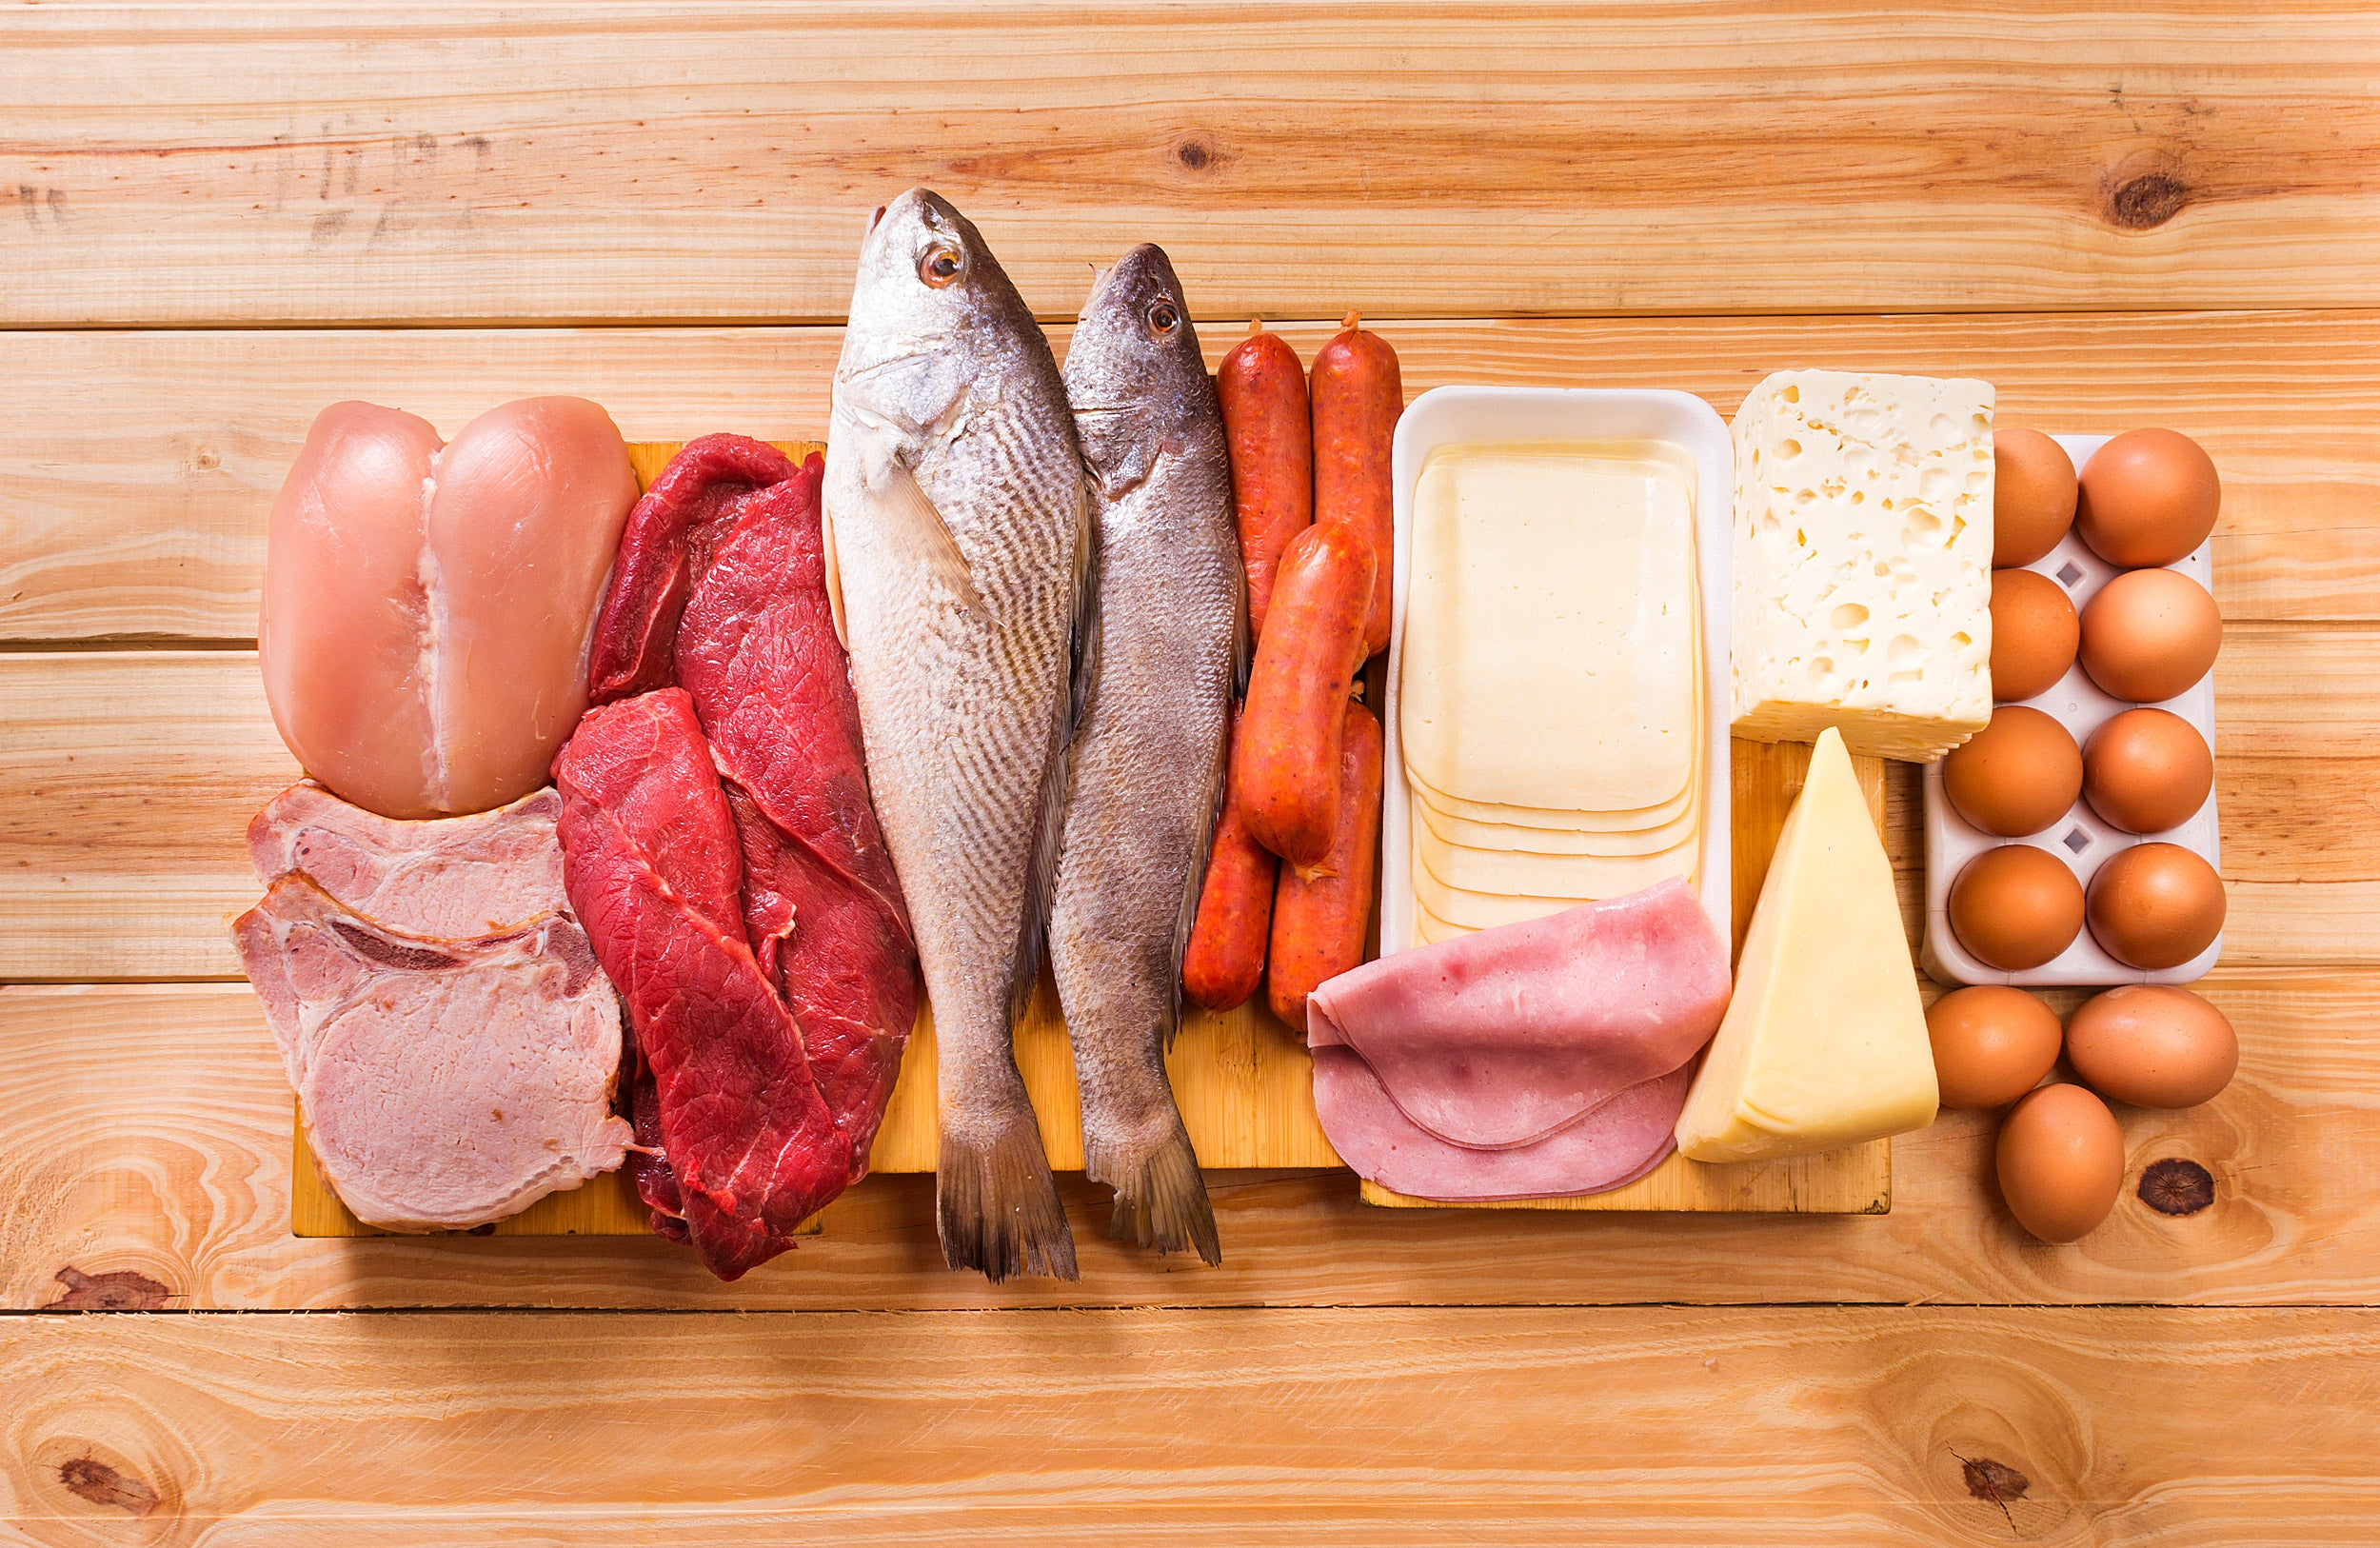 meats, fish, dairy, eggs, white meat on a wooden table as background